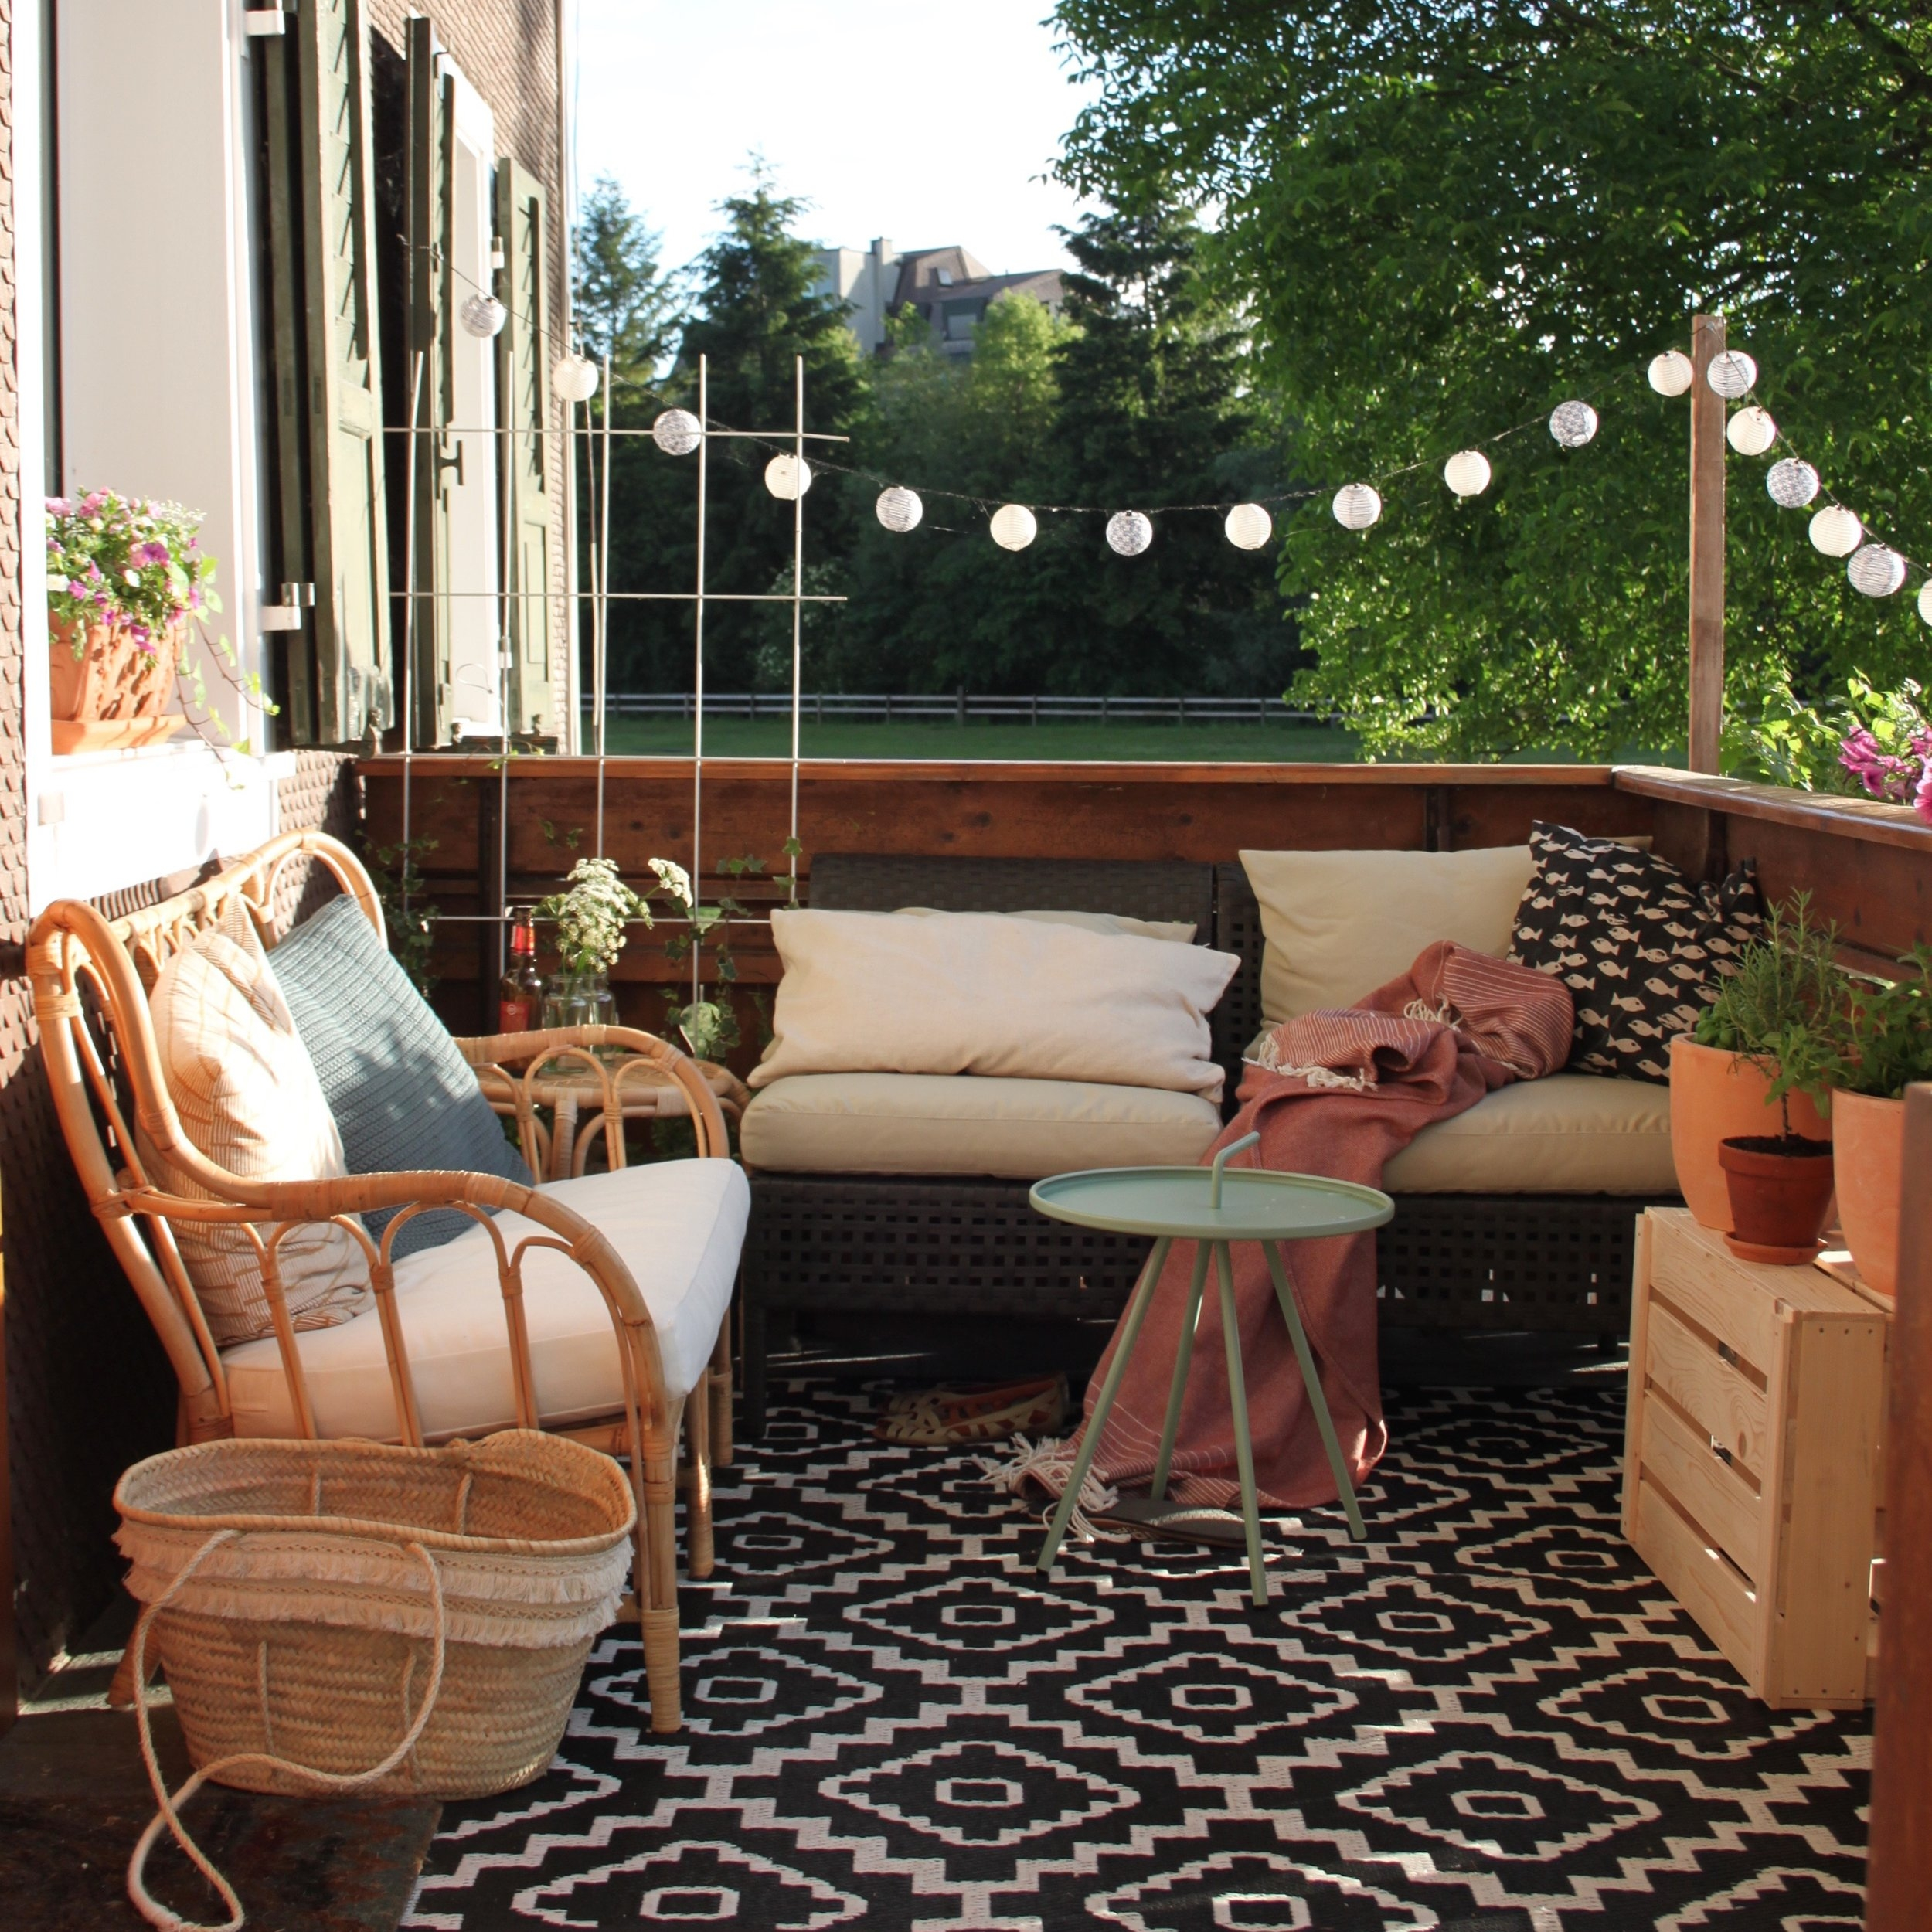 Outdoor Teppich Toptip Blog Home Staging Nordisch